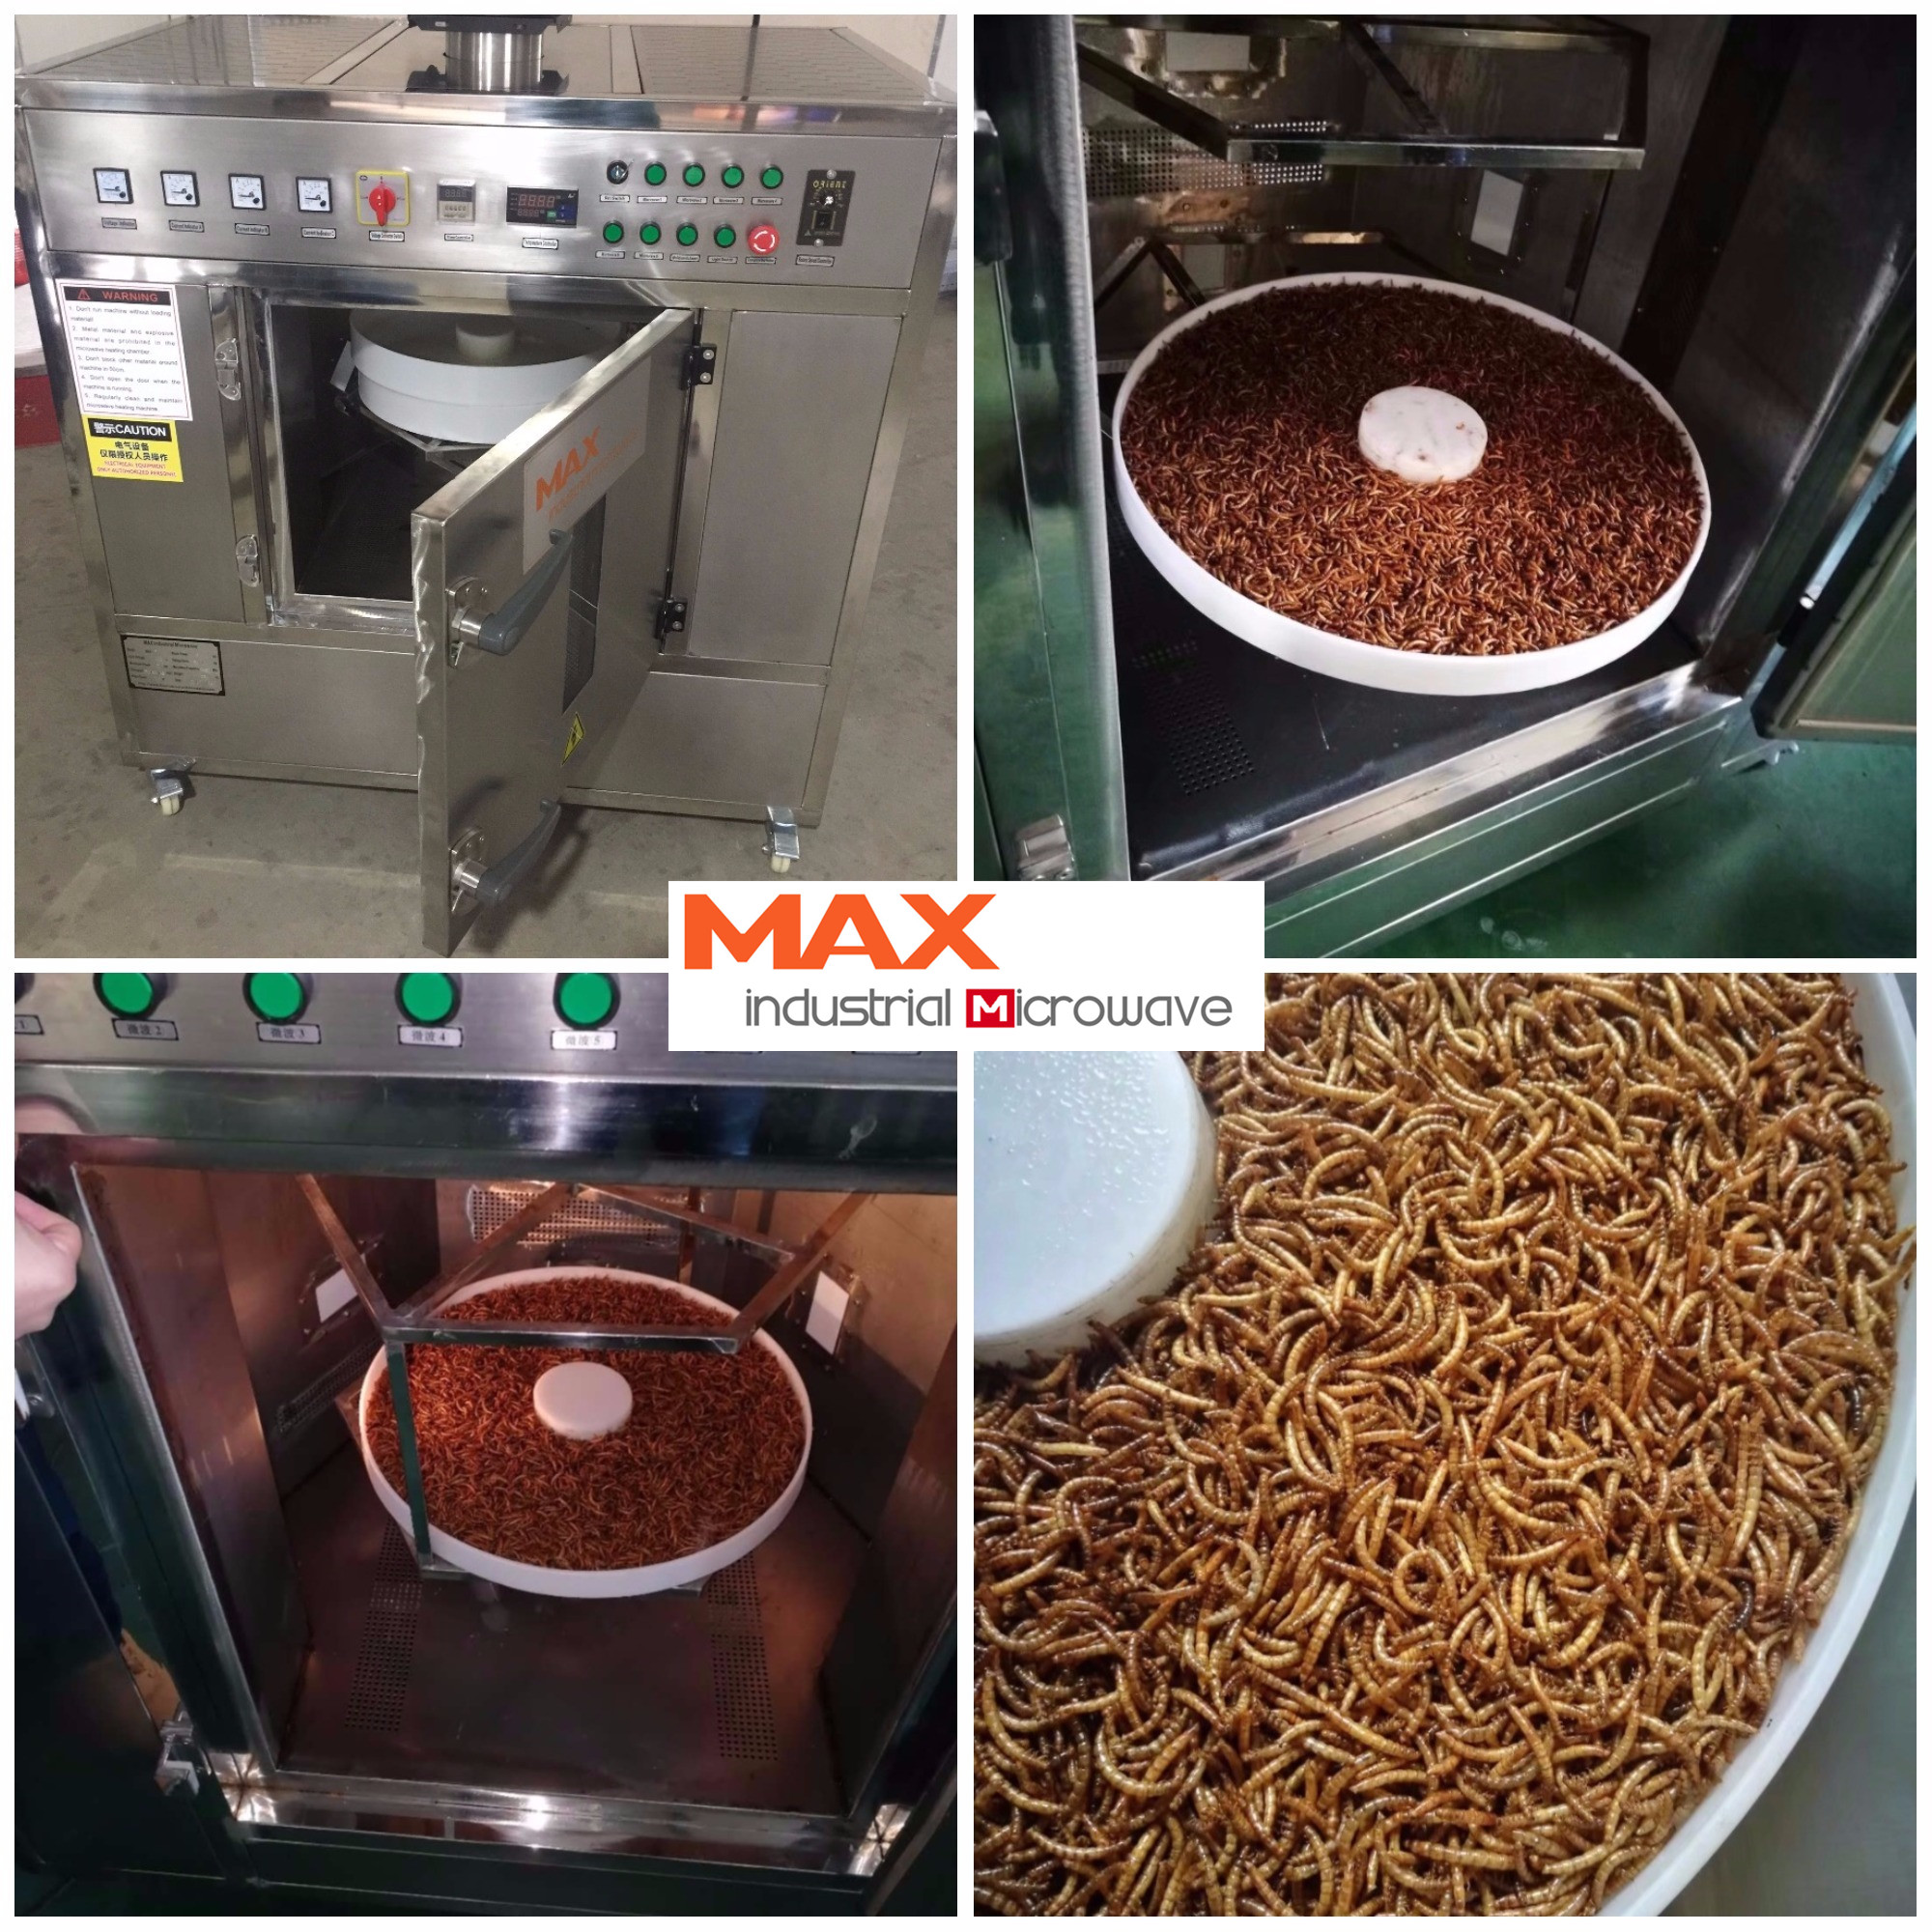 mealworm drying